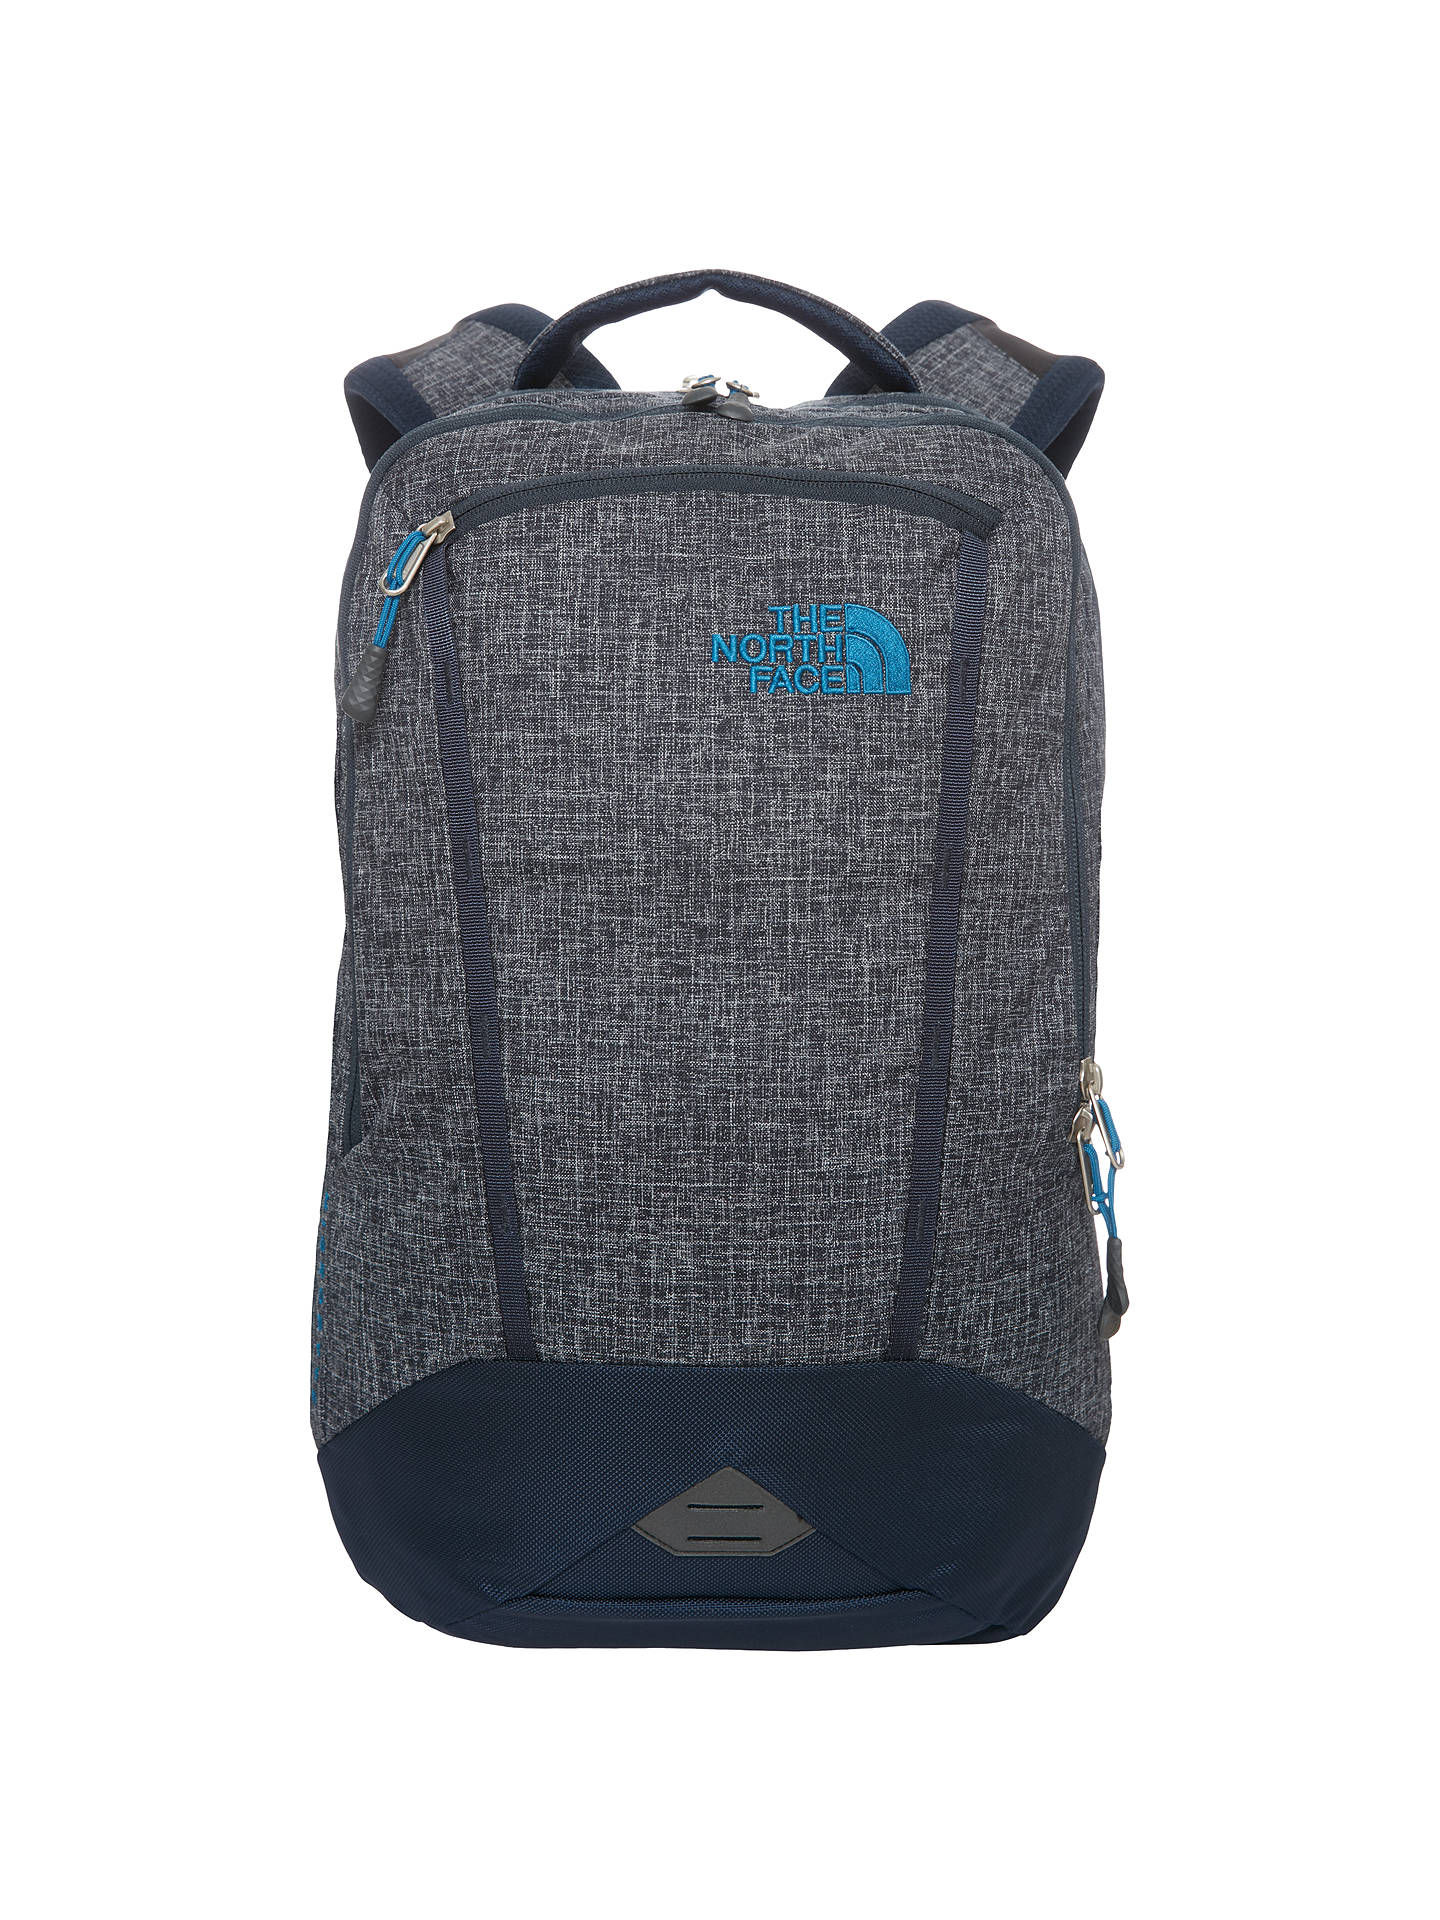 BuyThe North Face Microbyte Backpack, Navy Grey Online at johnlewis.com ... 0d948b9784